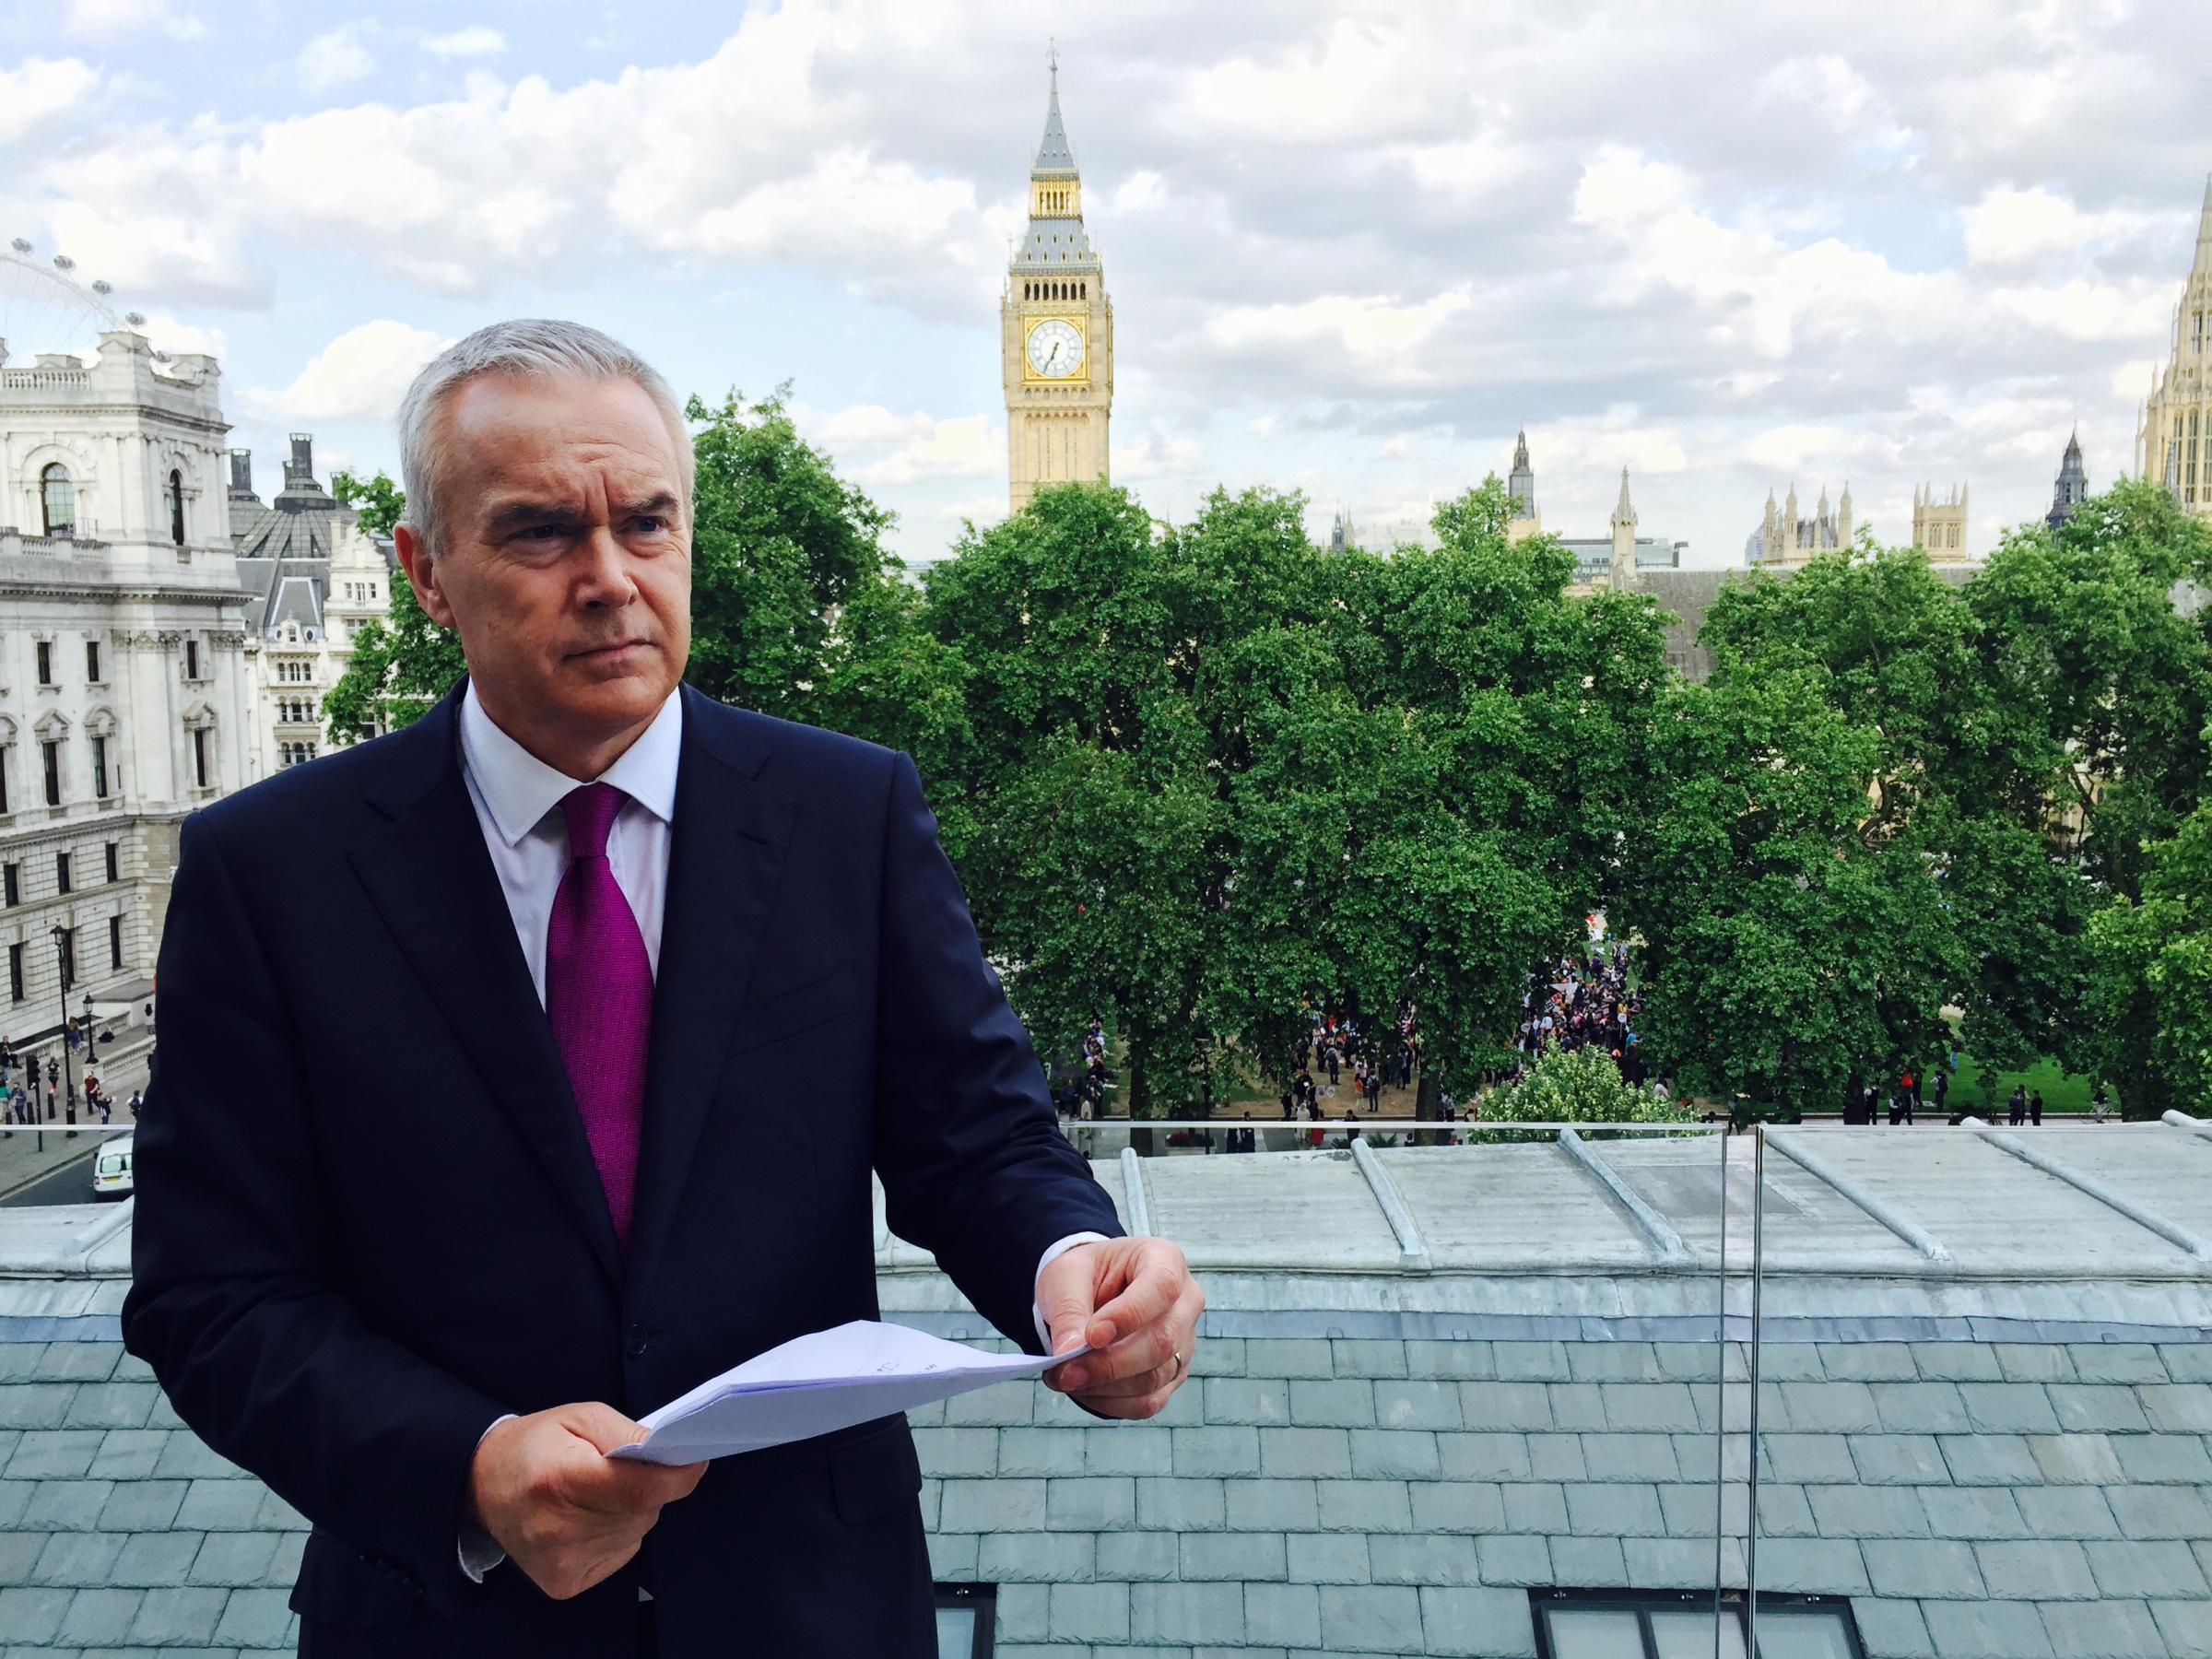 What's News? An Evening with Huw Edwards